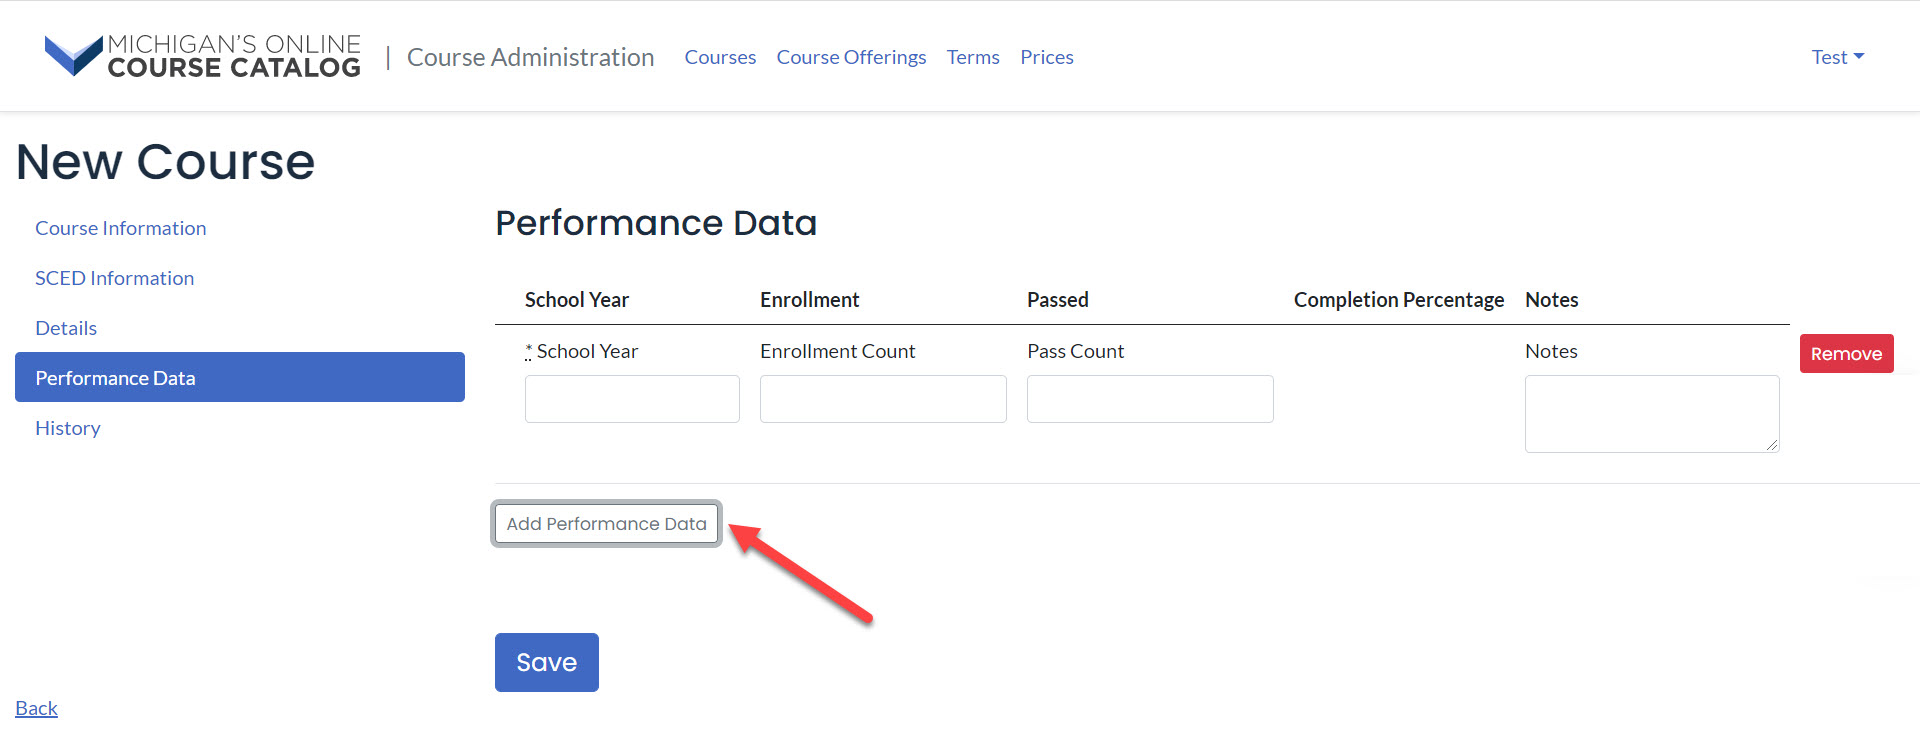 Image of the New Course Page that shows the Add Performance Data menu option. This also has an arrow pointing to the Add Performance Data button and displays what a user would see, school year, enrollment count, etc, when selected.